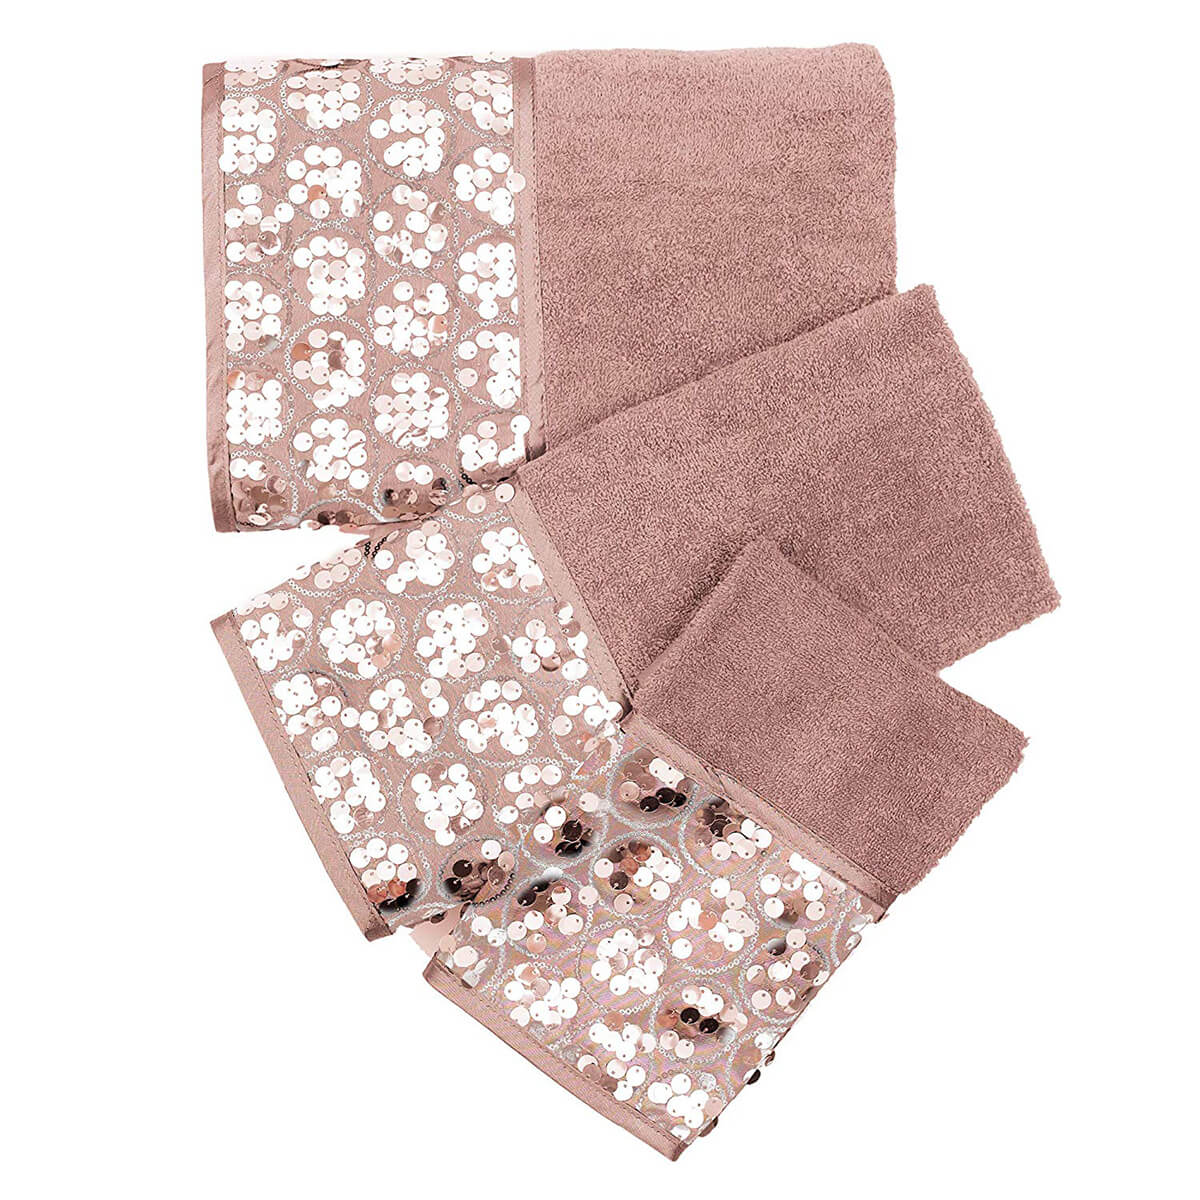 Sinatra Bath Towel Set by Popular Bath